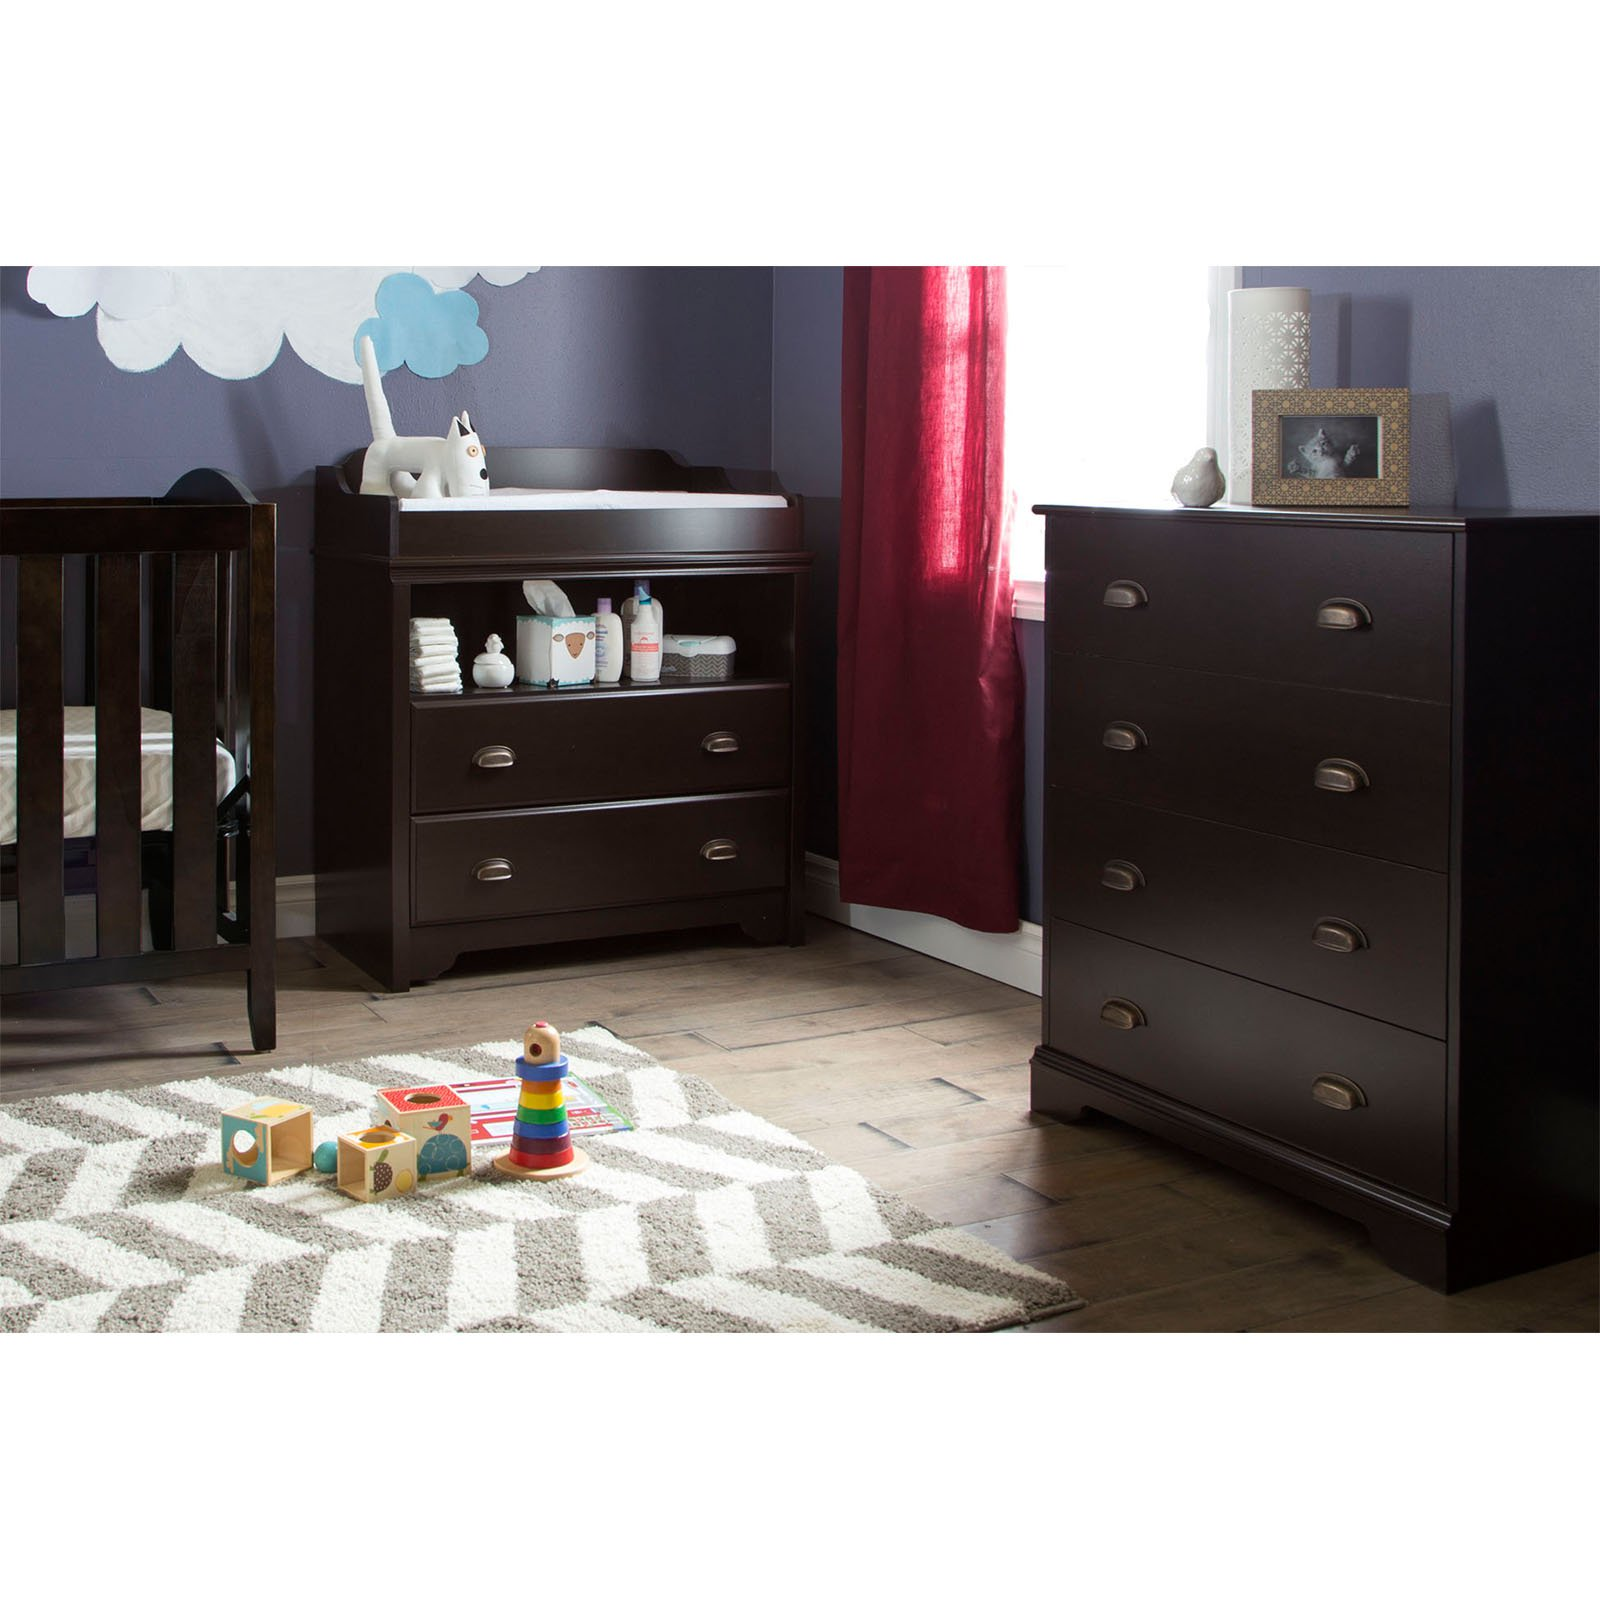 South Shore Fundy Tide Changing Table and 4-Drawer Chest, Multiple Finishes by South Shore Furniture